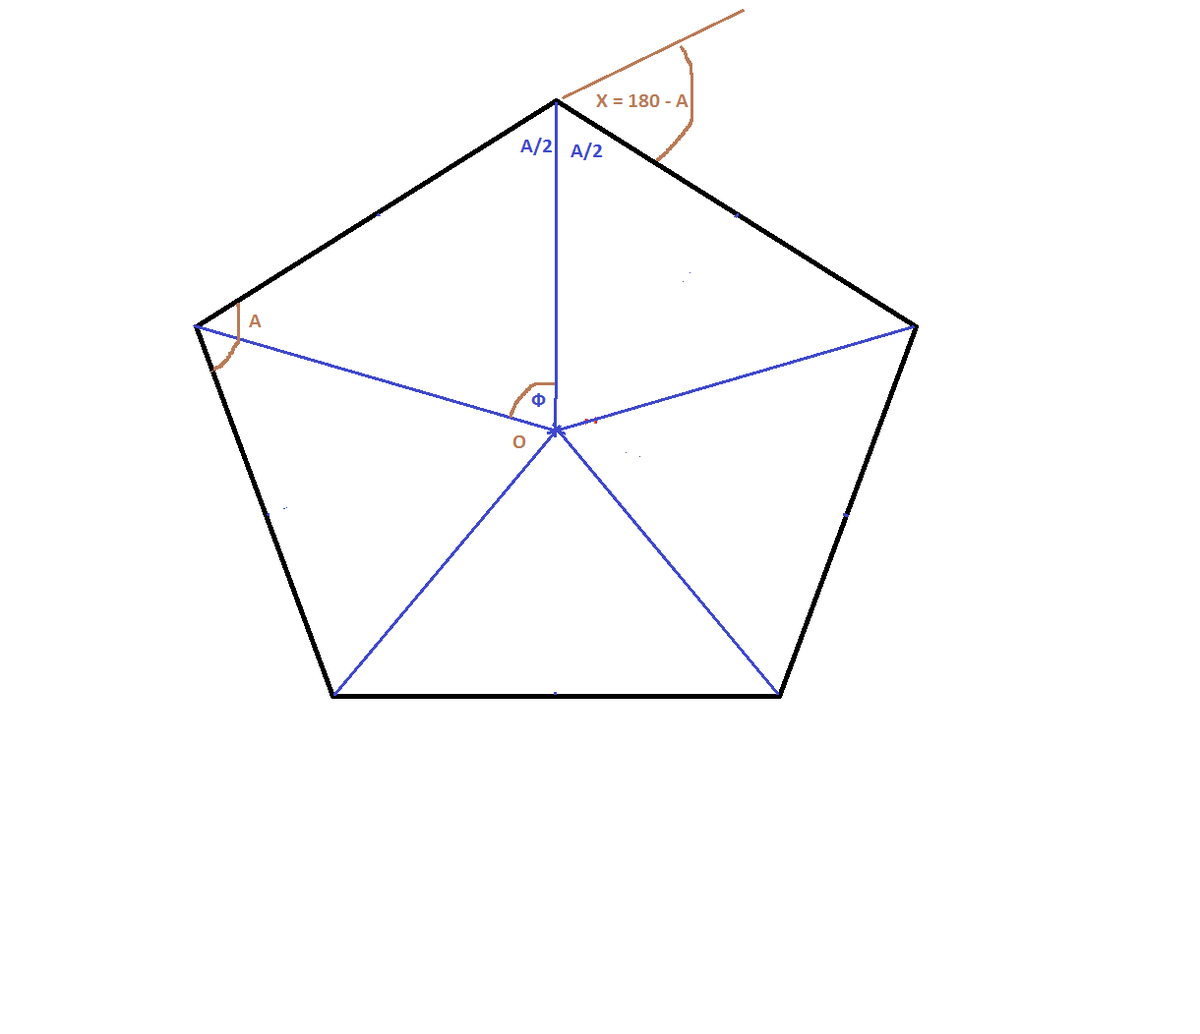 If The Exterior Angle Of A Regular Polygon Is 45 Degrees